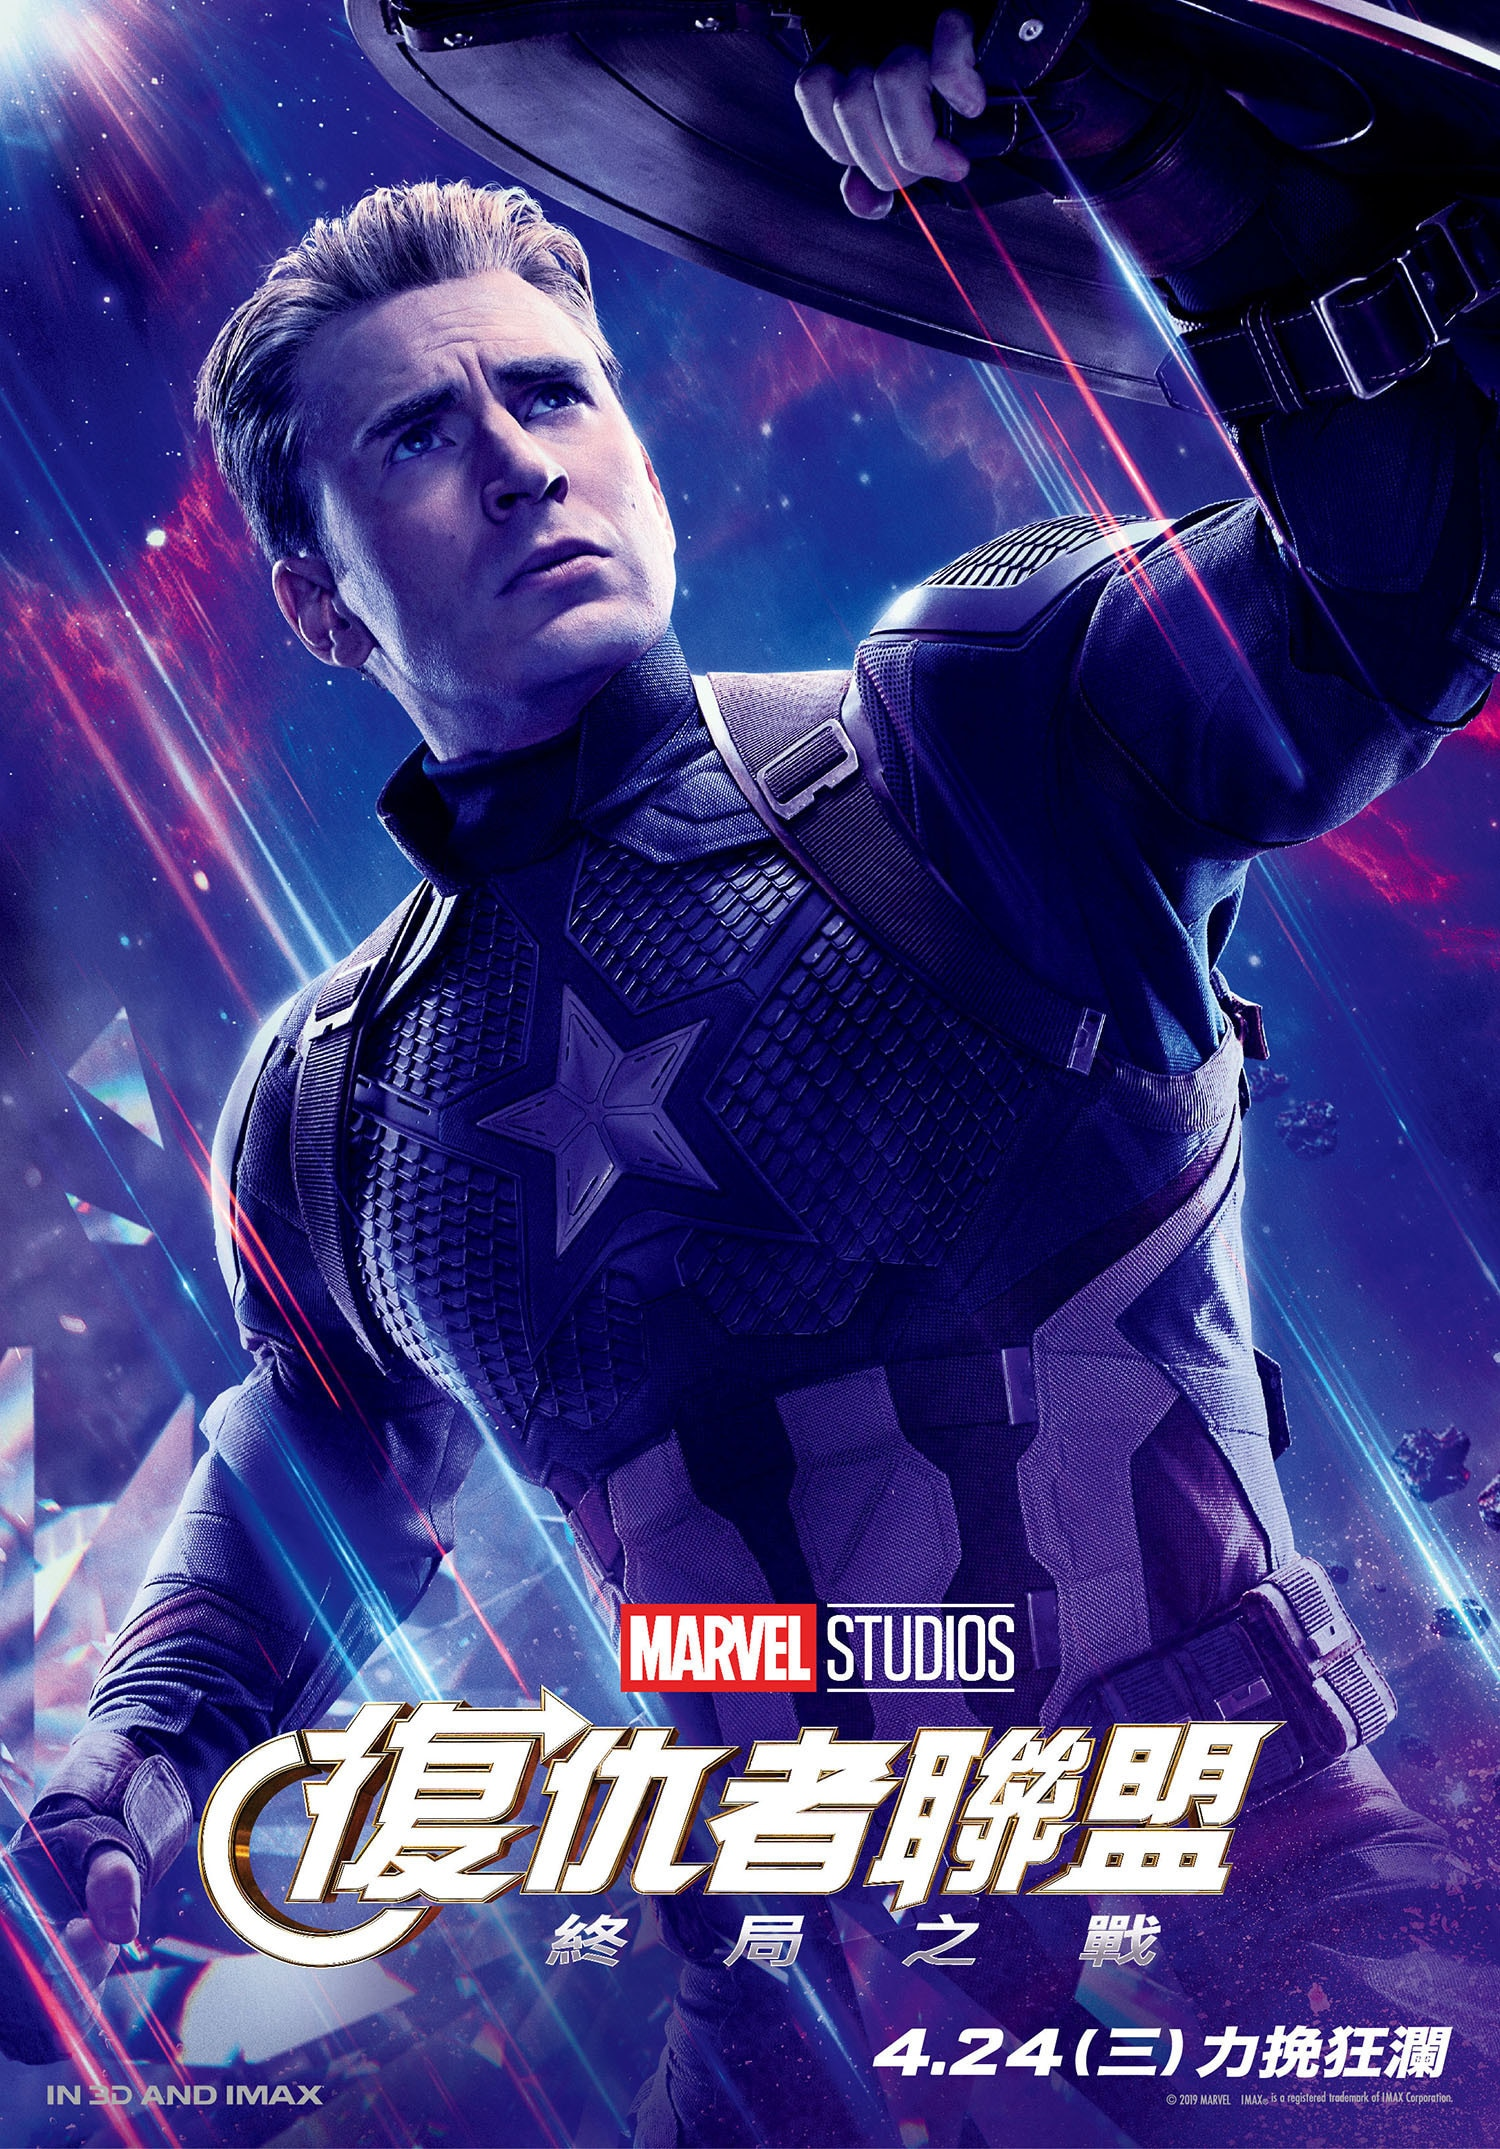 Avengers:End Game - Captain America